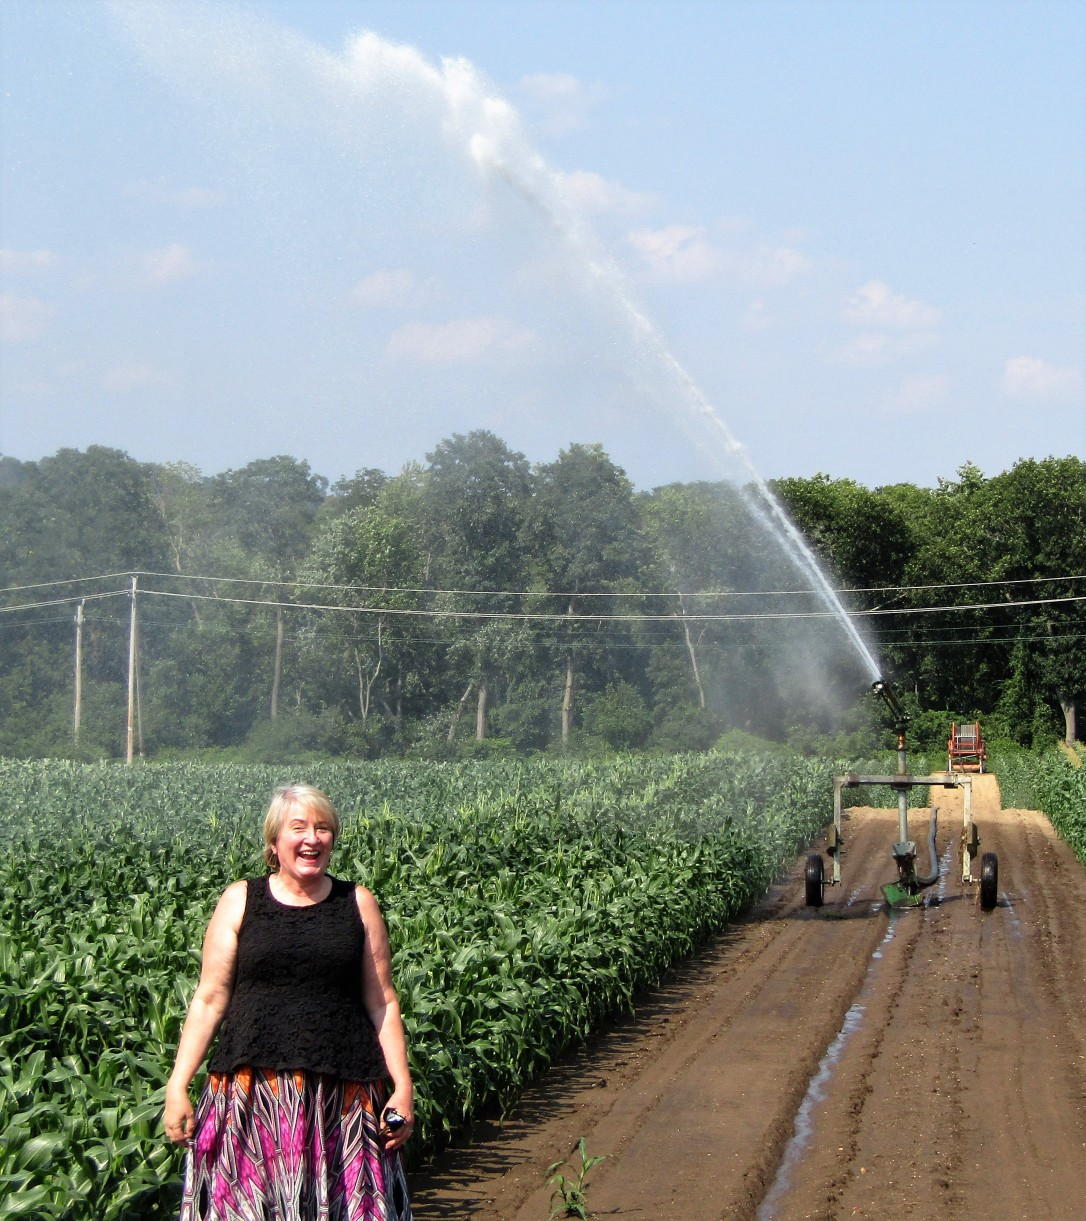 IMG_1773 HAV (c) Alison Colby-Campbell Chrs Farm Stand watering corn august